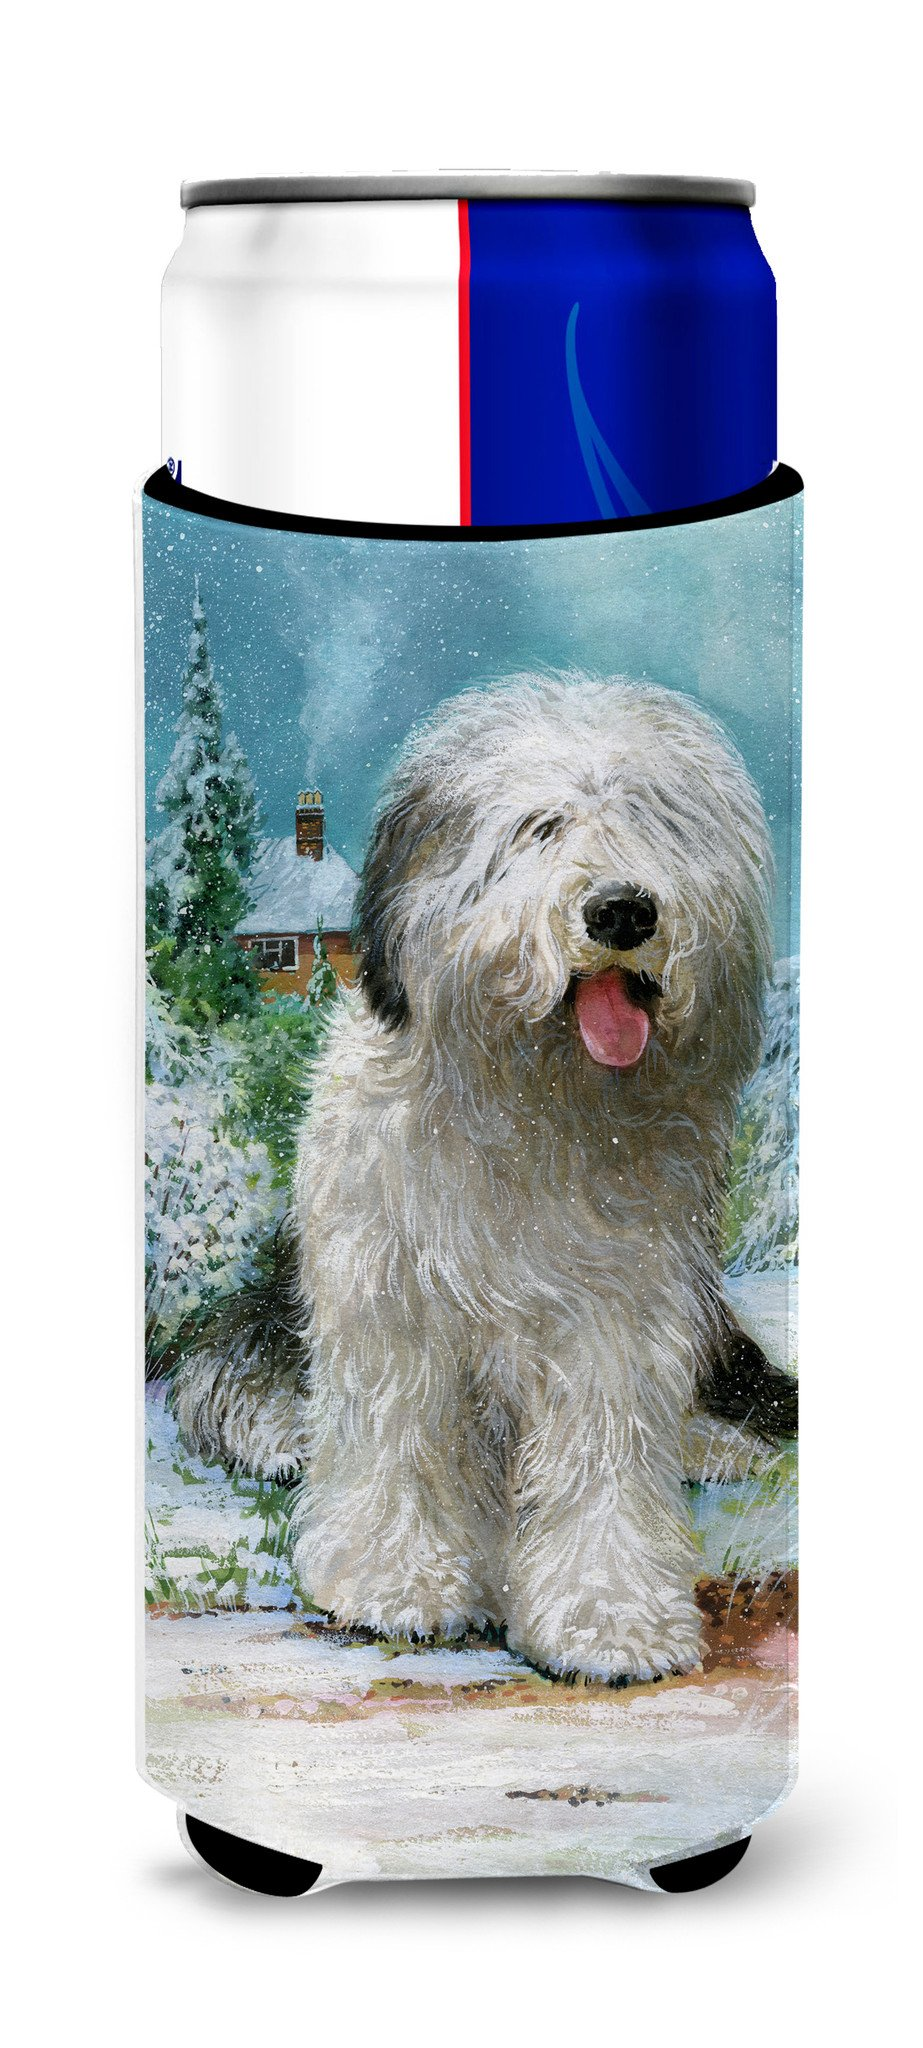 Buy this Old English Sheepdog by Don Squires Ultra Beverage Insulators for slim cans SDSQ0304MUK